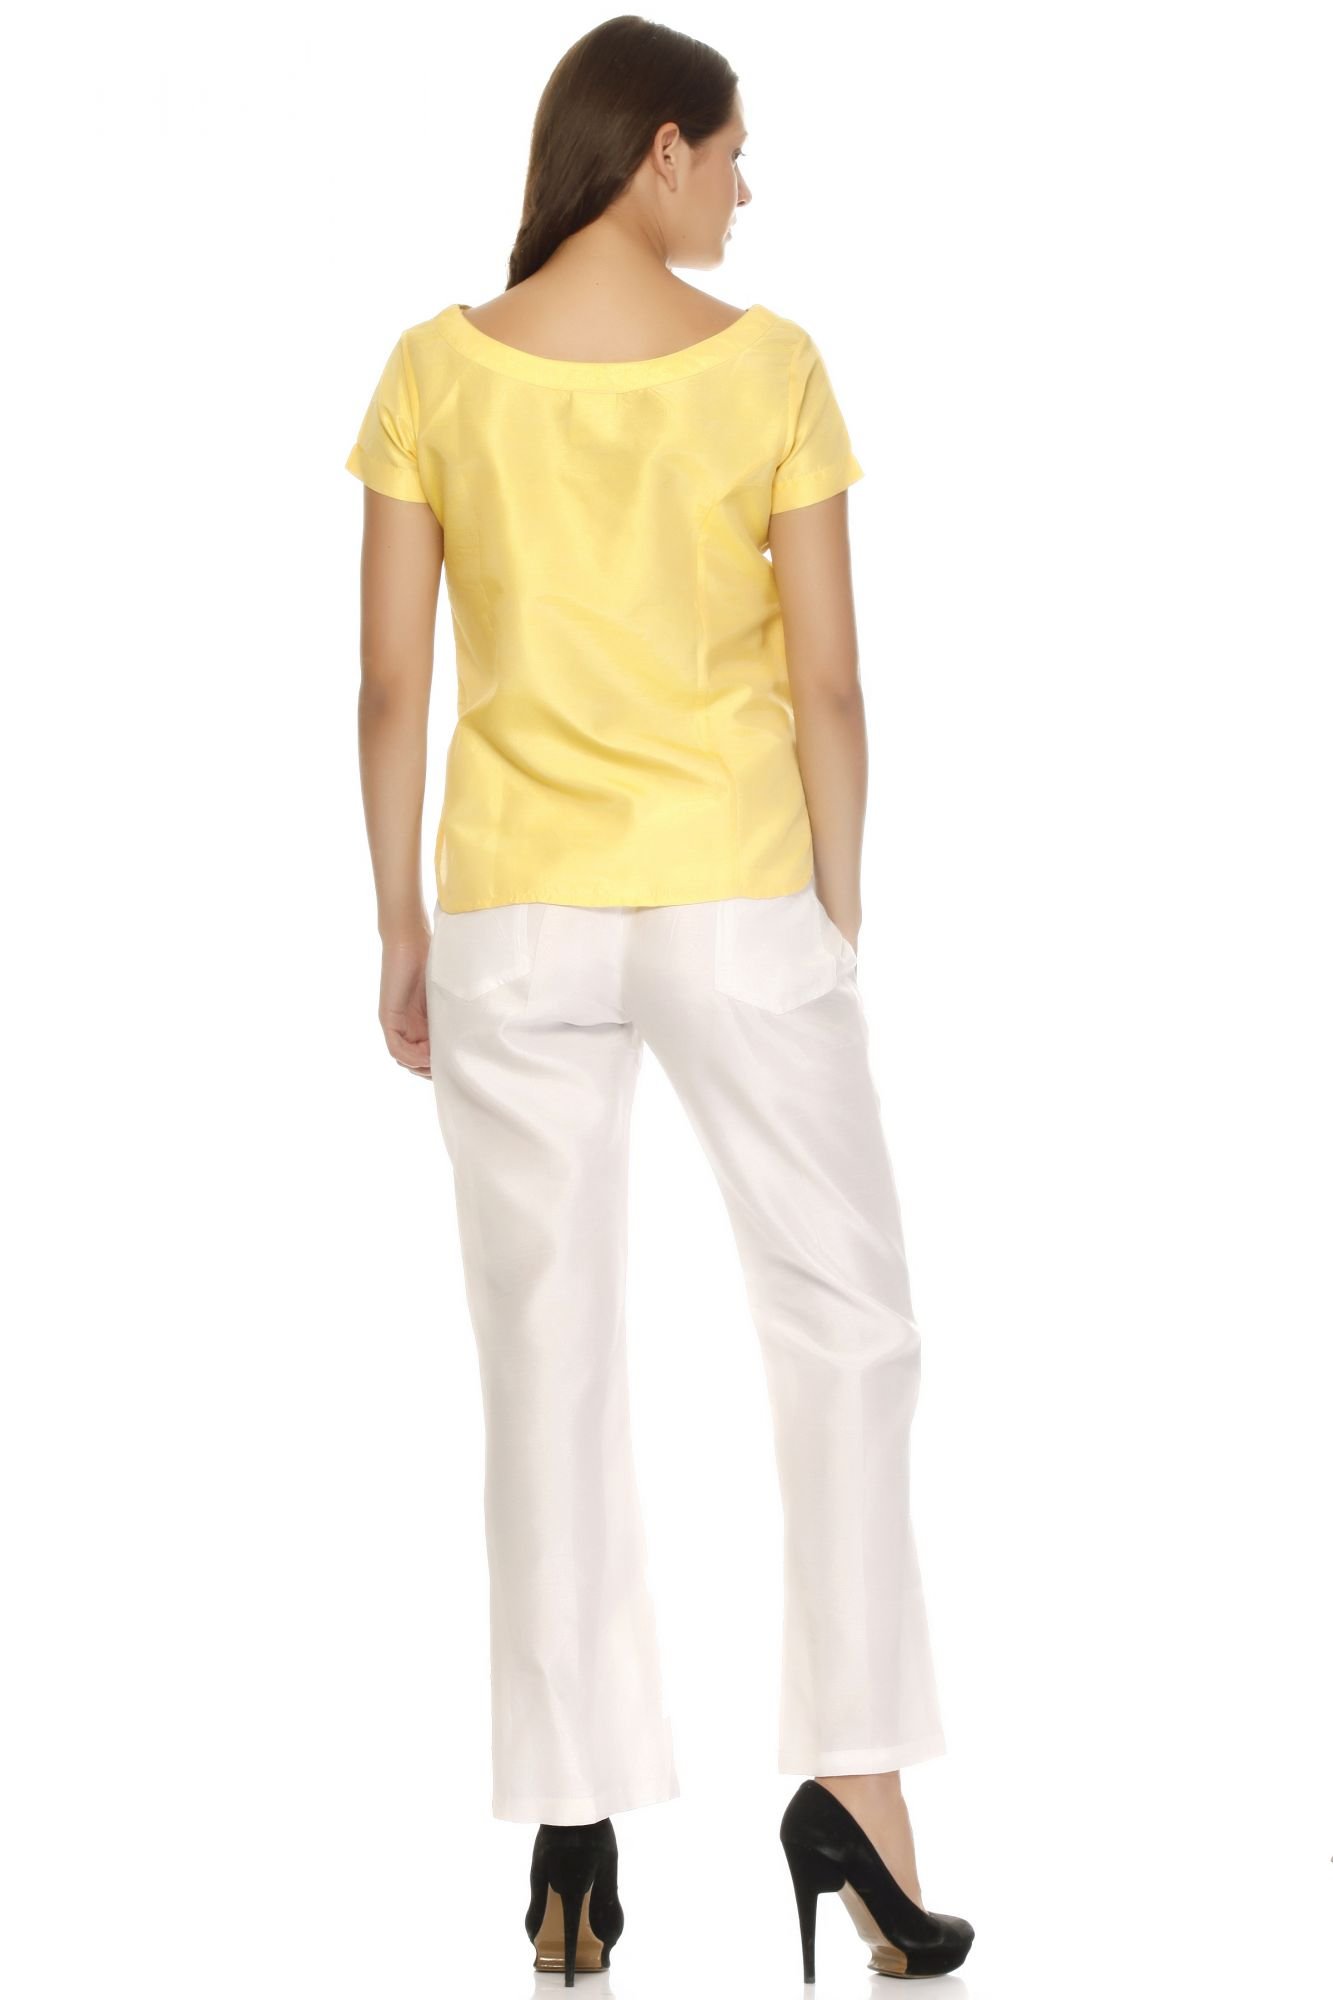 DS Yellow Fashionable Regular top & pant